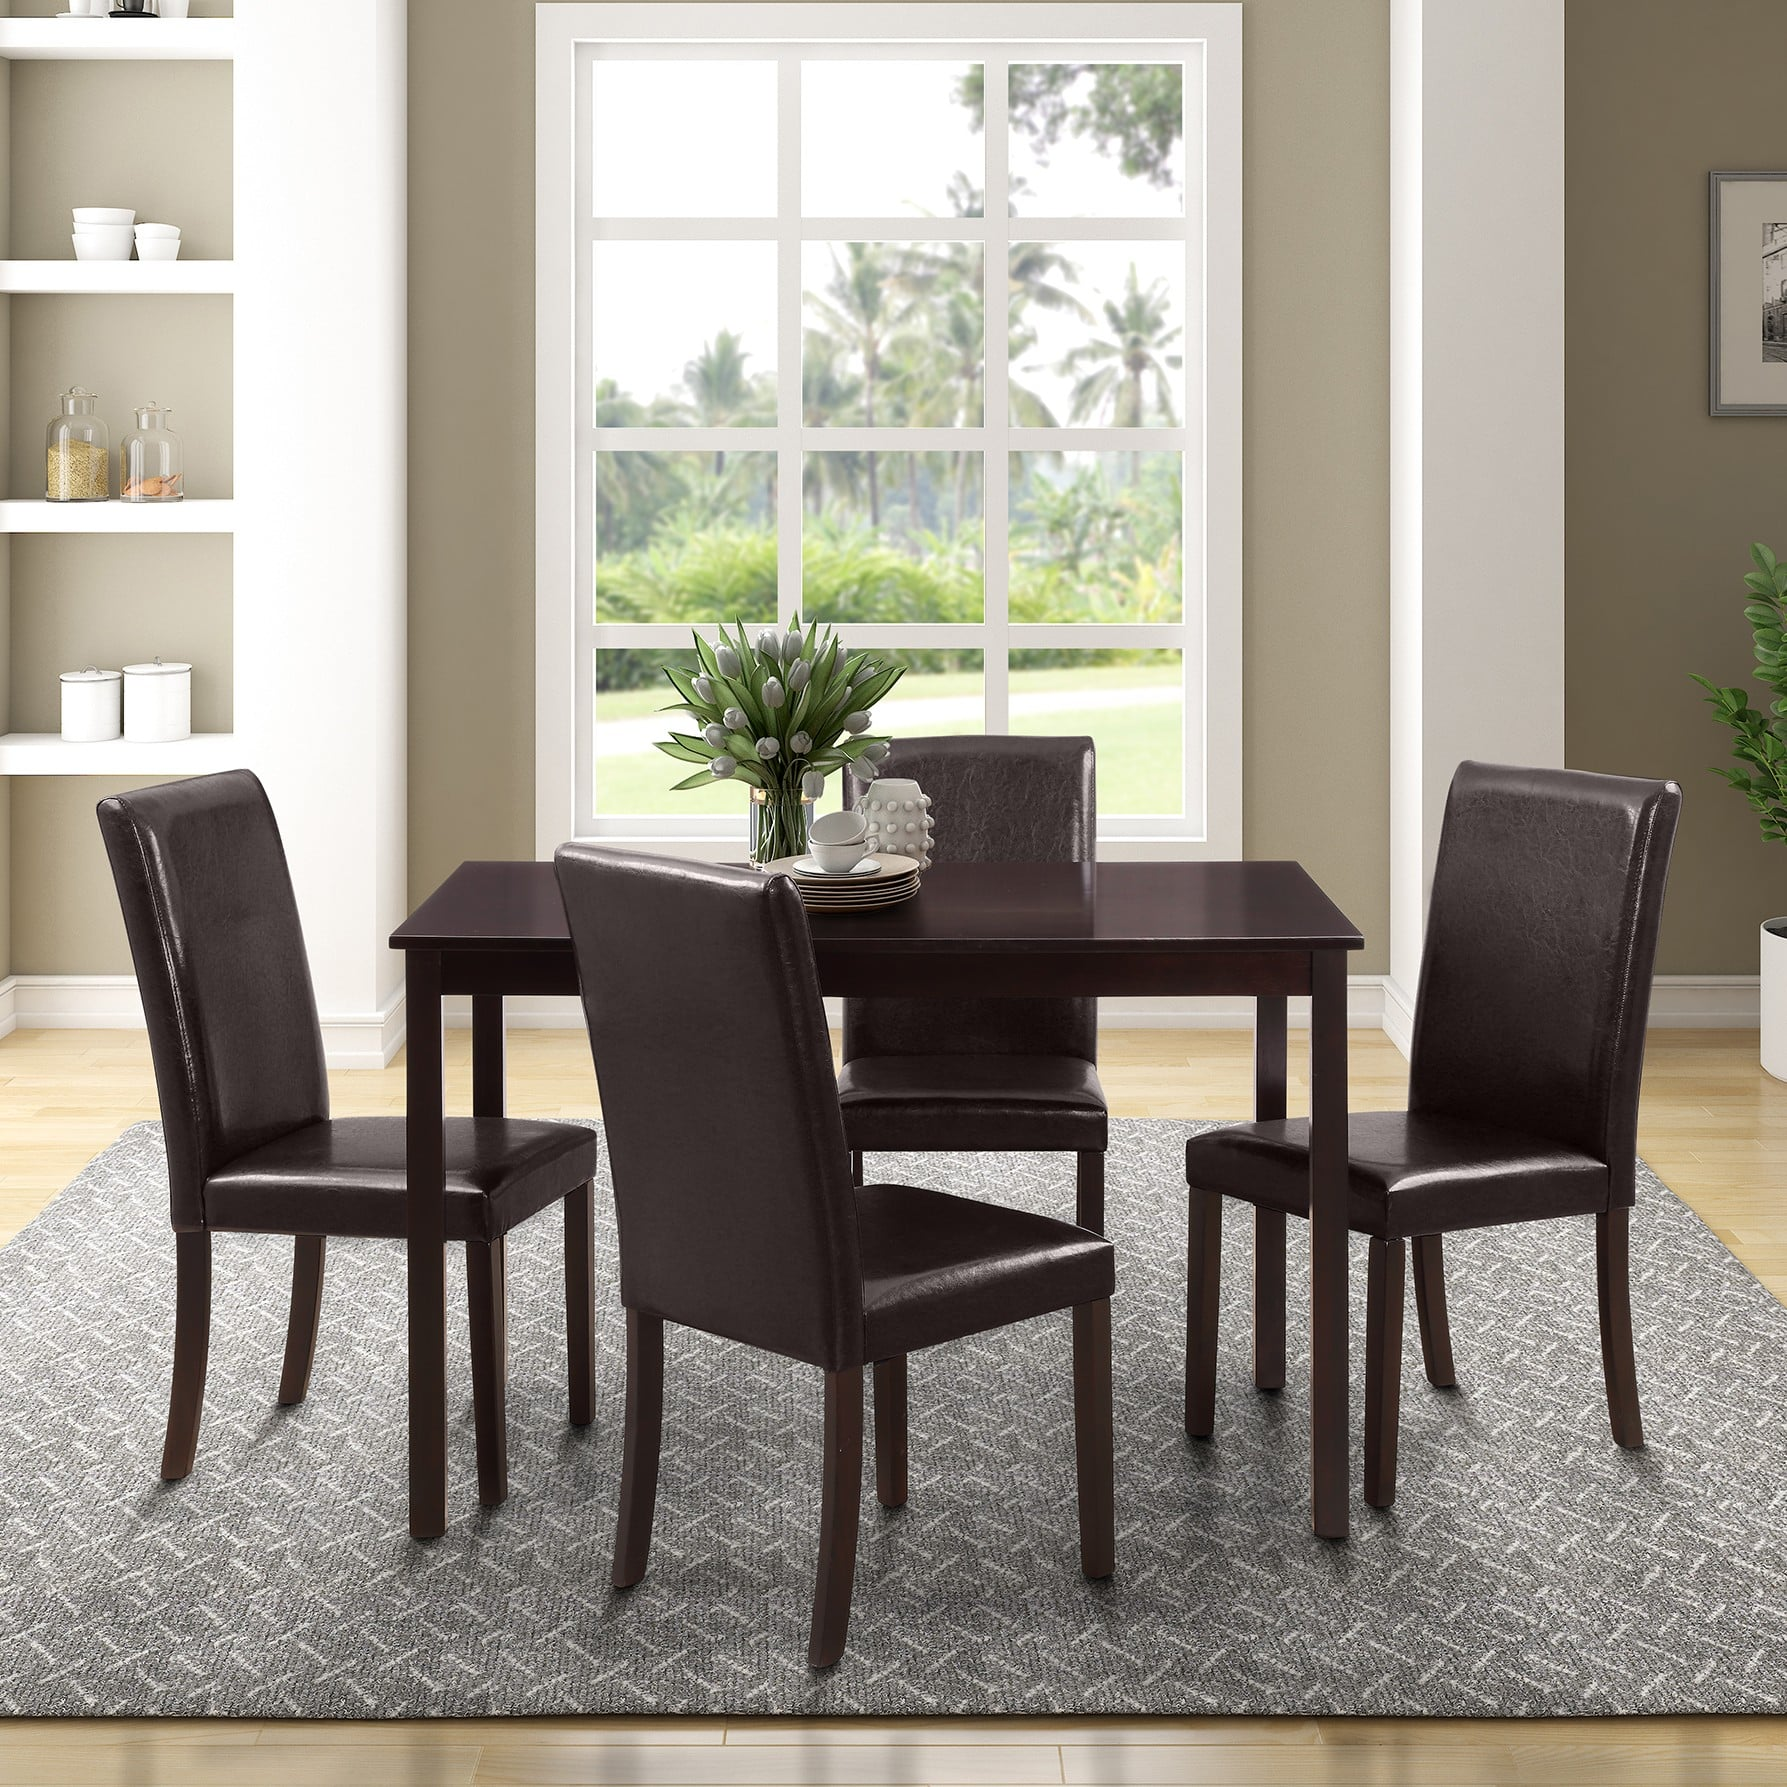 Best Dining Room Sets Under $250 | POPSUGAR Home